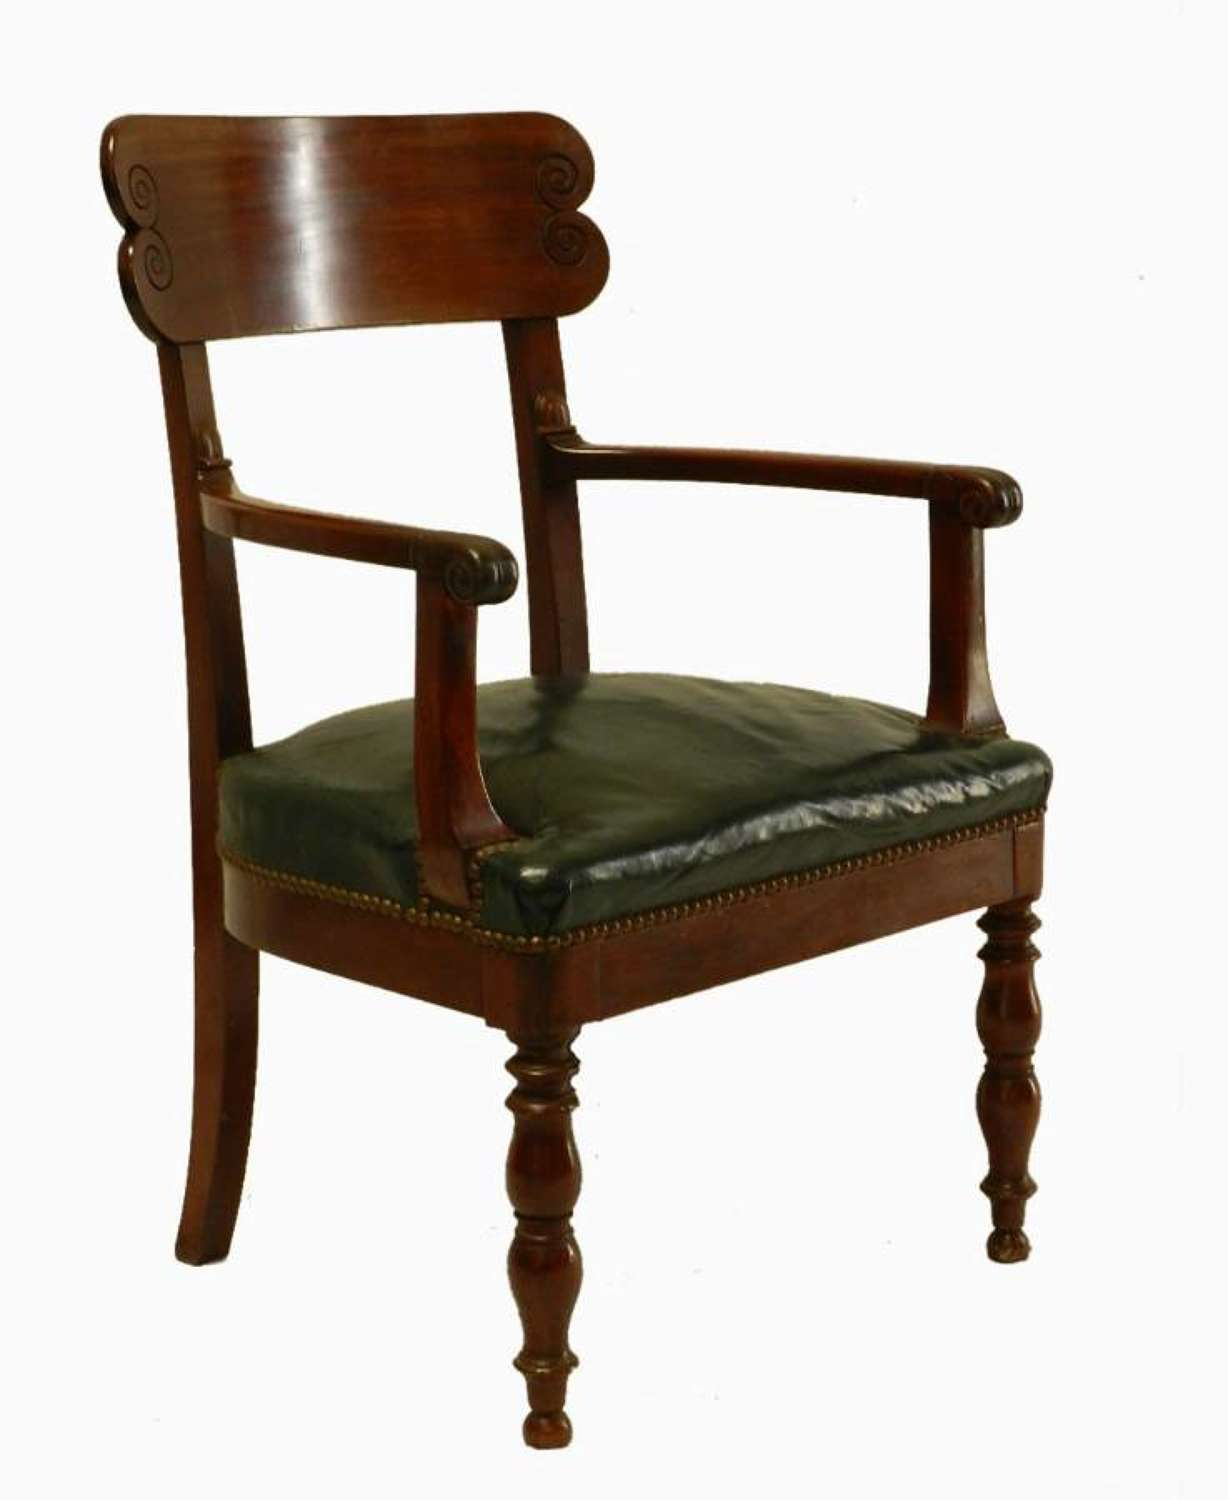 Good French Provincial Desk Chair Library Open Armchair with Leather Seat